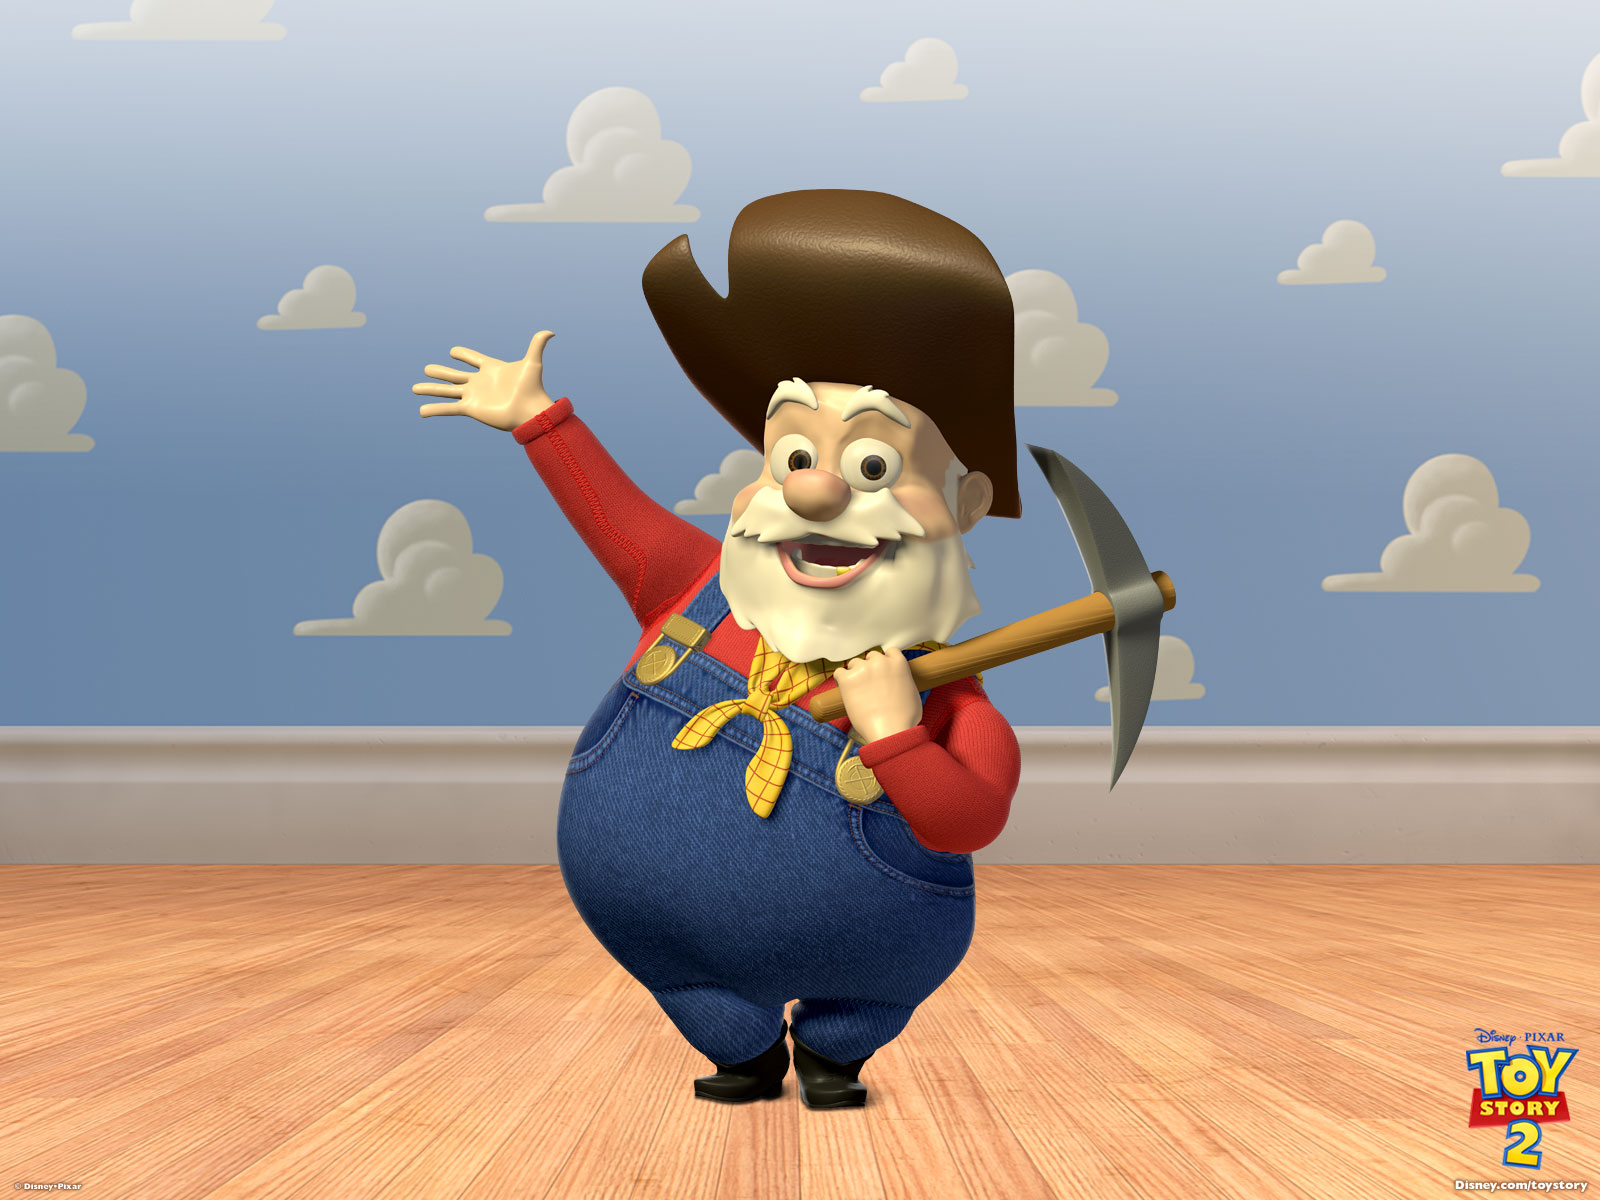 Toy Story HD Wallpapers Backgrounds